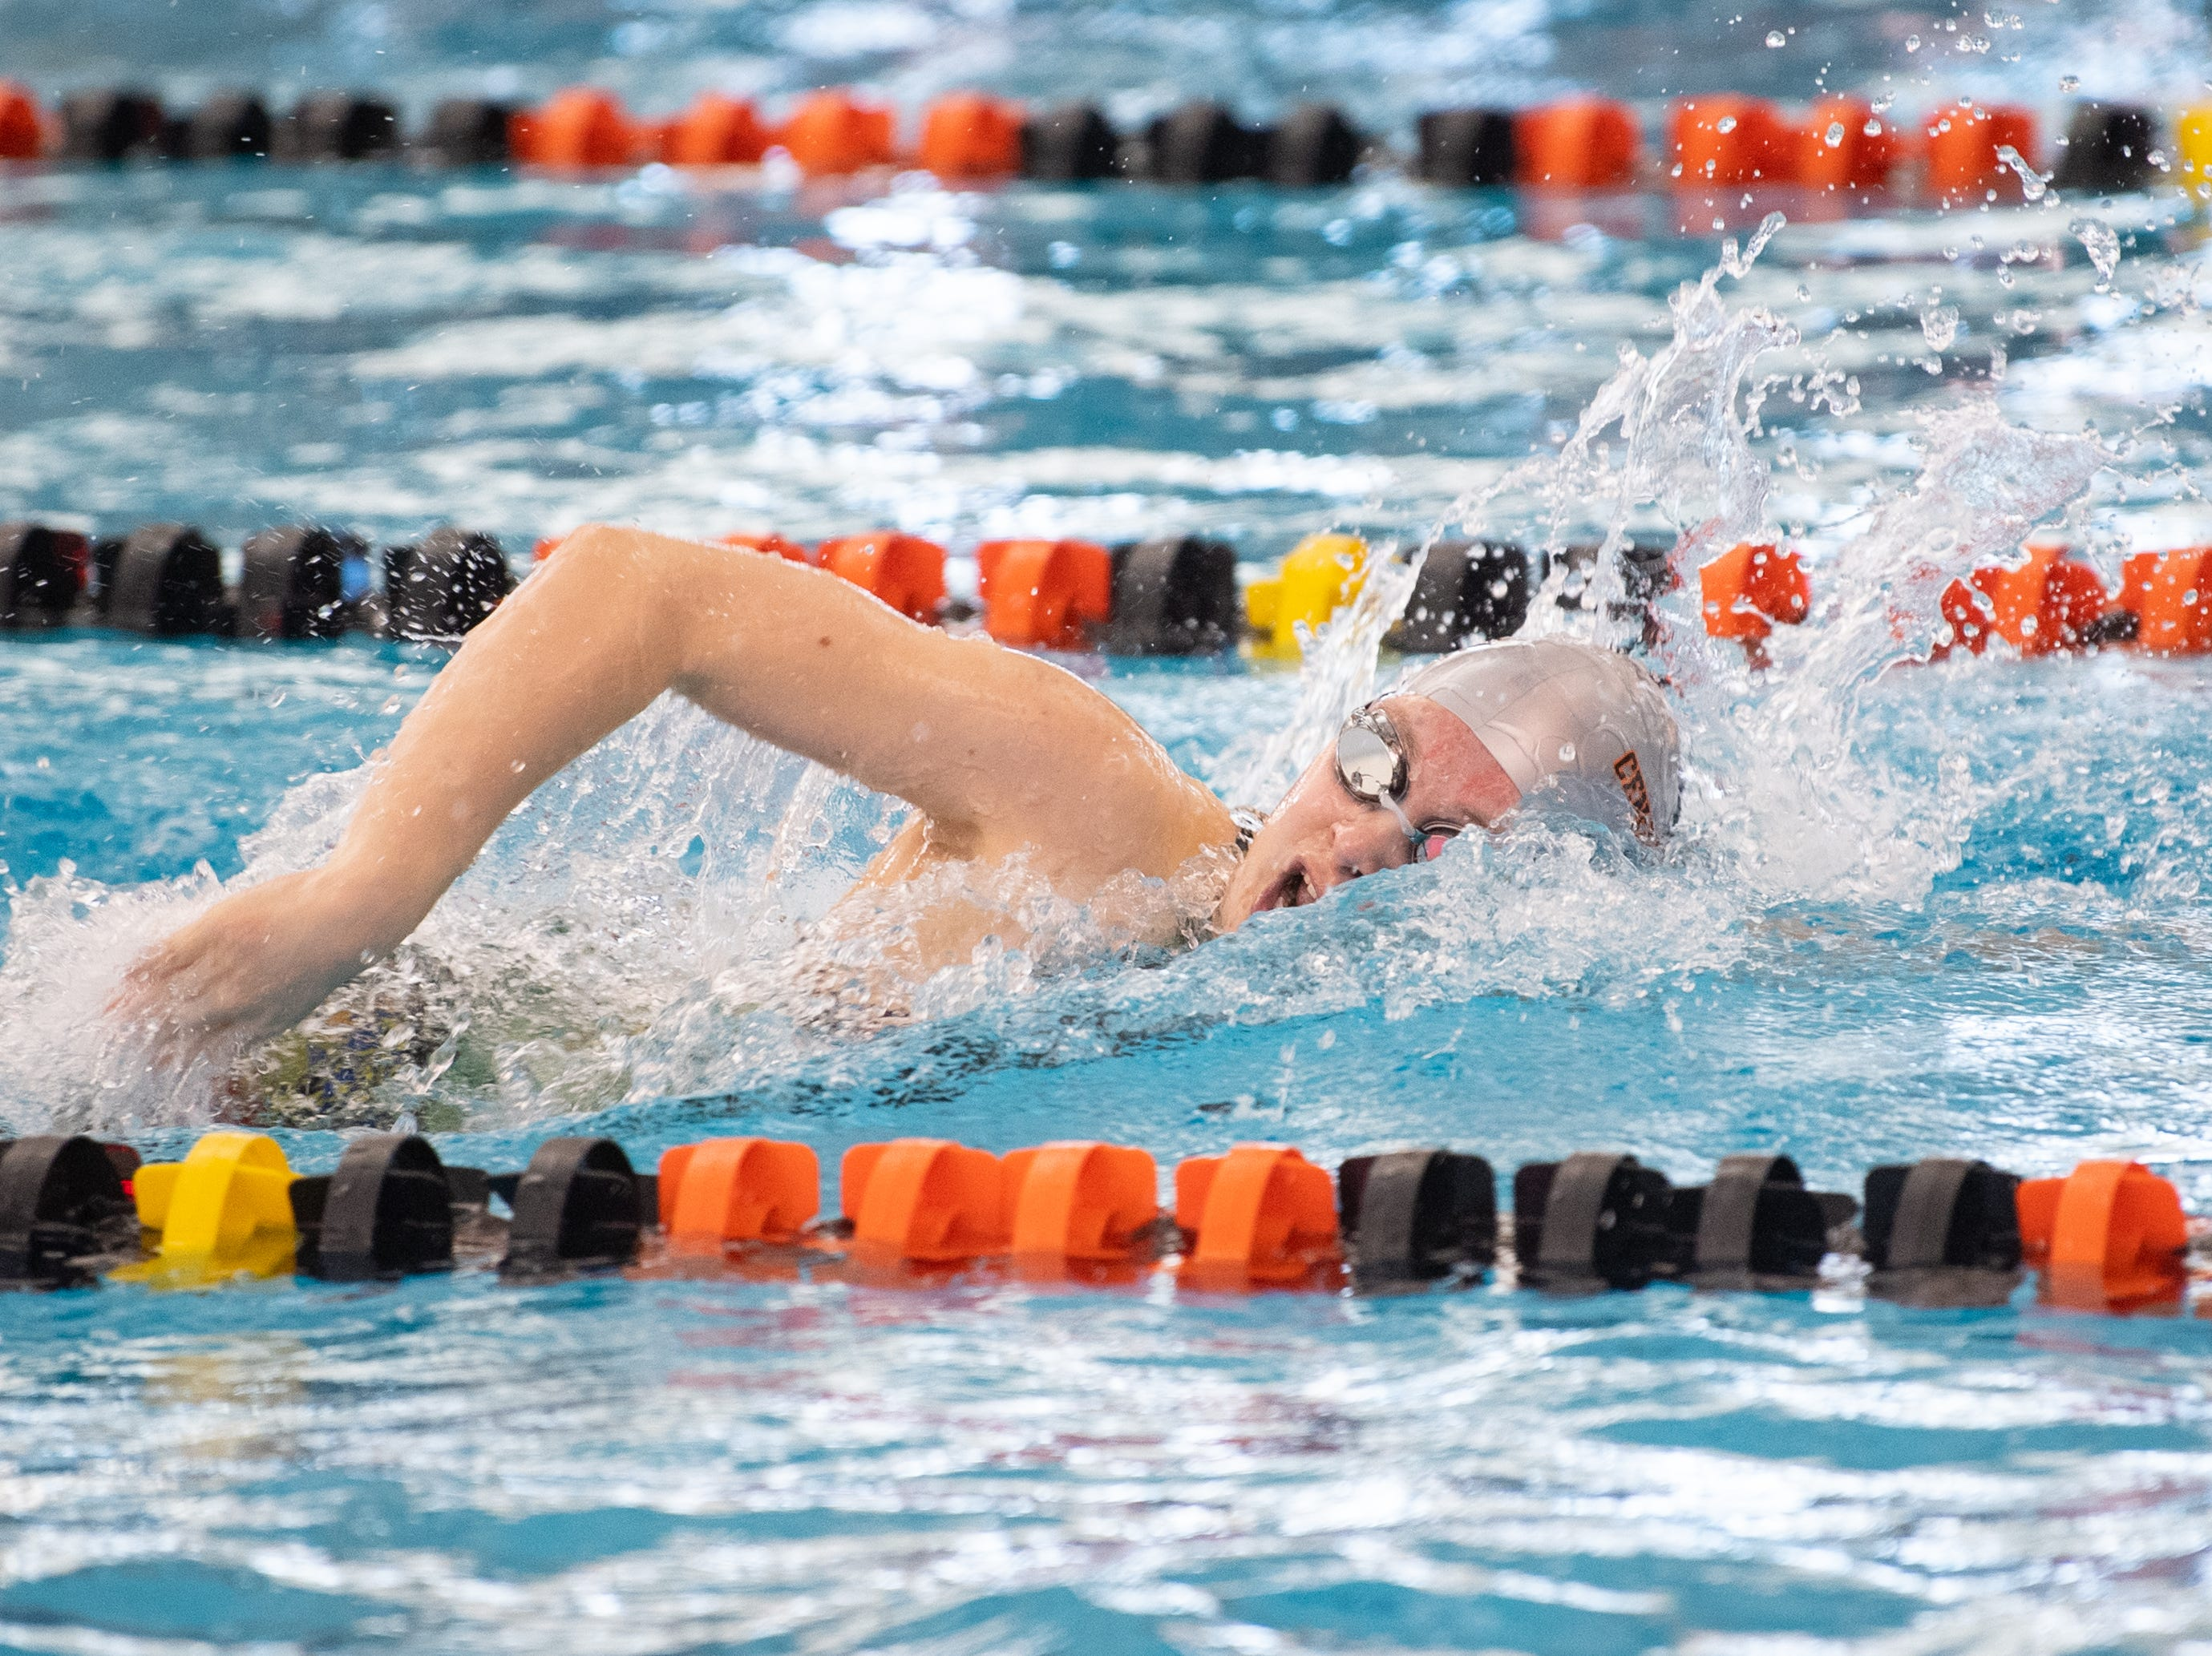 Central York's Gabby Miller competes in the Girls 400 Yard Freestyle Relay at the 2019 YAIAA Swimming and Diving Championships at Central York High School, February 9, 2019.